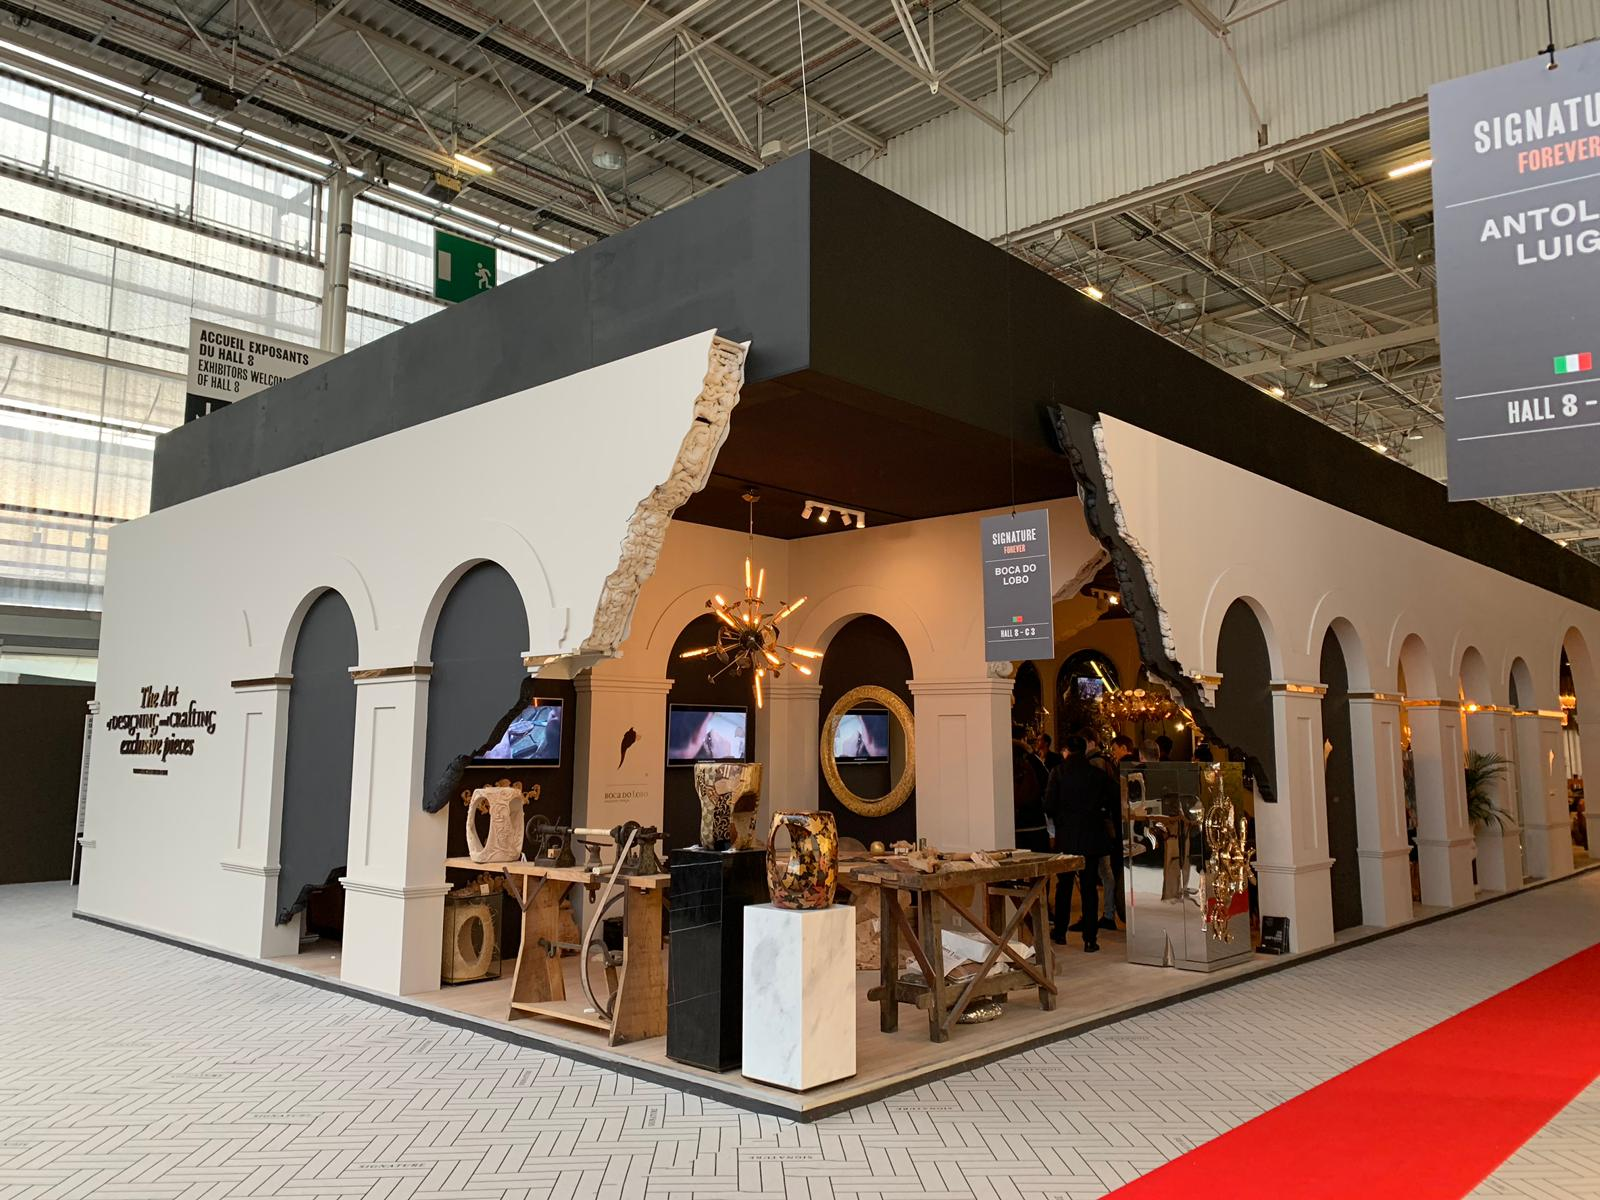 Maison et Objet 2019 – First Highlights from the First Day maison et objet 2019 Maison et Objet 2019 – First Highlights from the First Day Maison et Objet 2019     First Highlights from the First Day 9